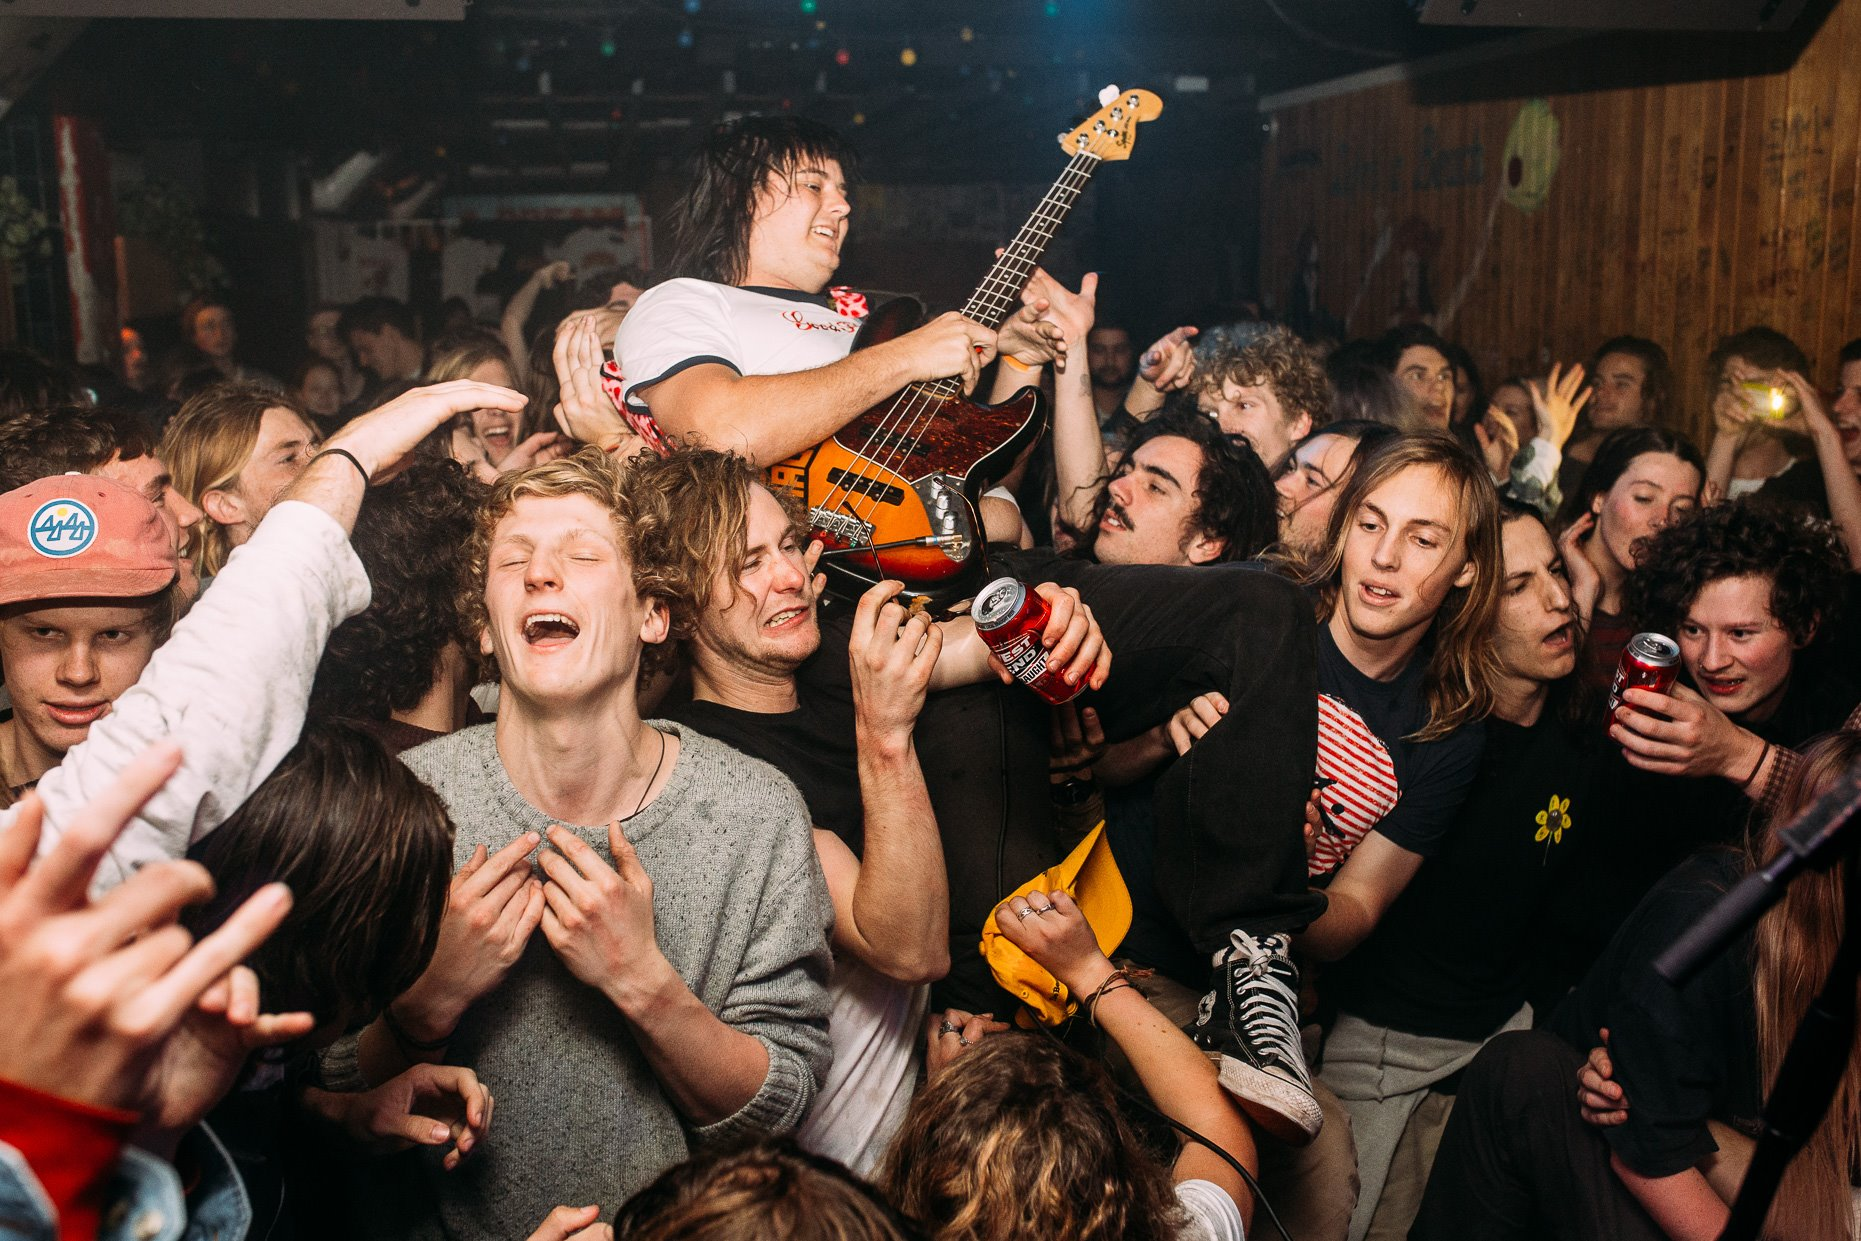 Skegss getting amongst the crowd at Rocket last month. Photo by Daniel Marks.